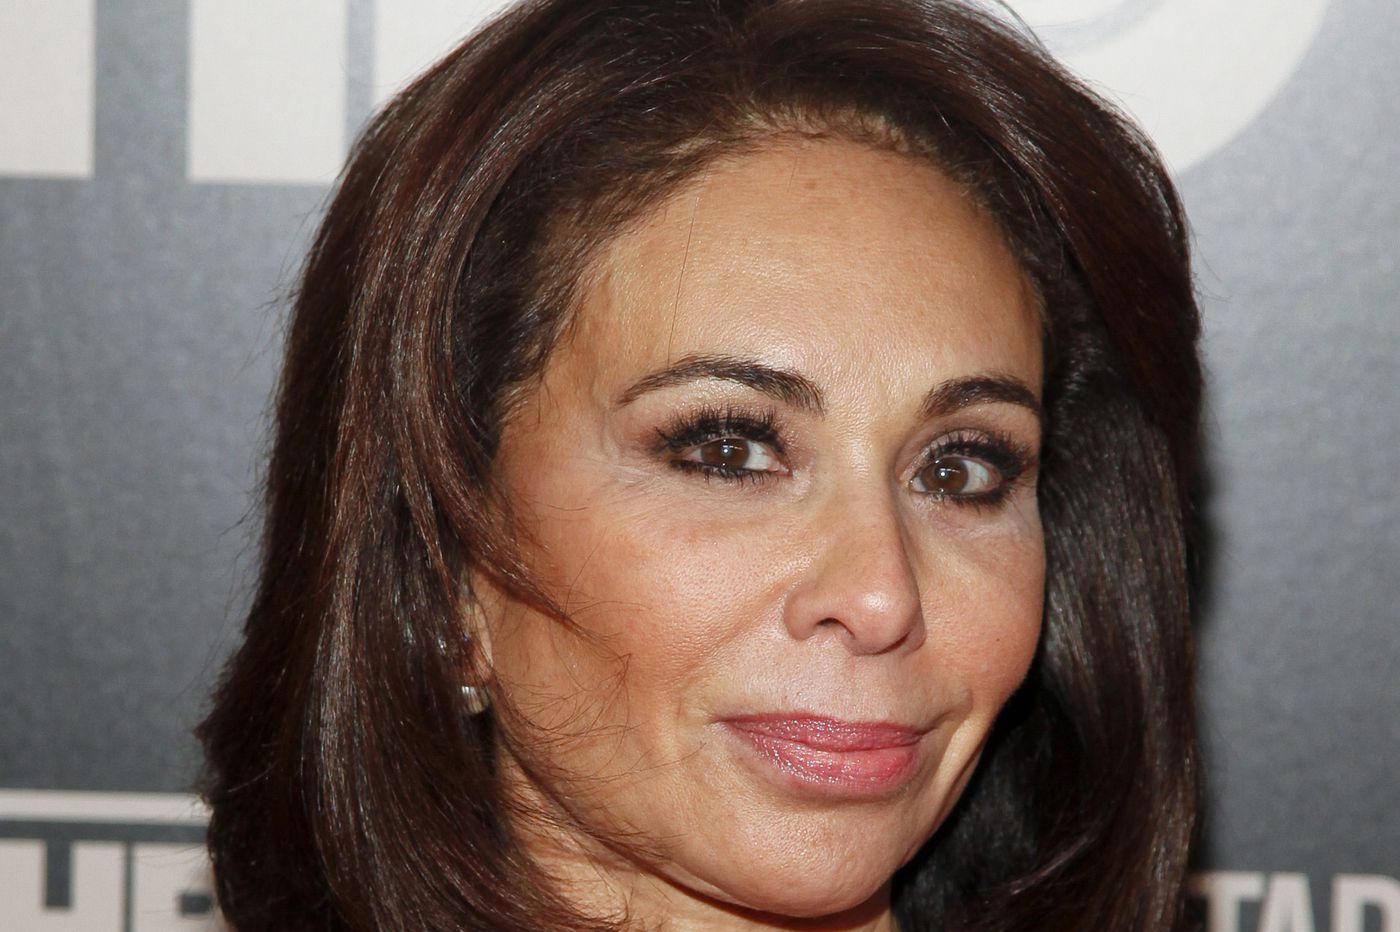 Jeanine Pirro returns to Fox News after Ilhan Omar flap